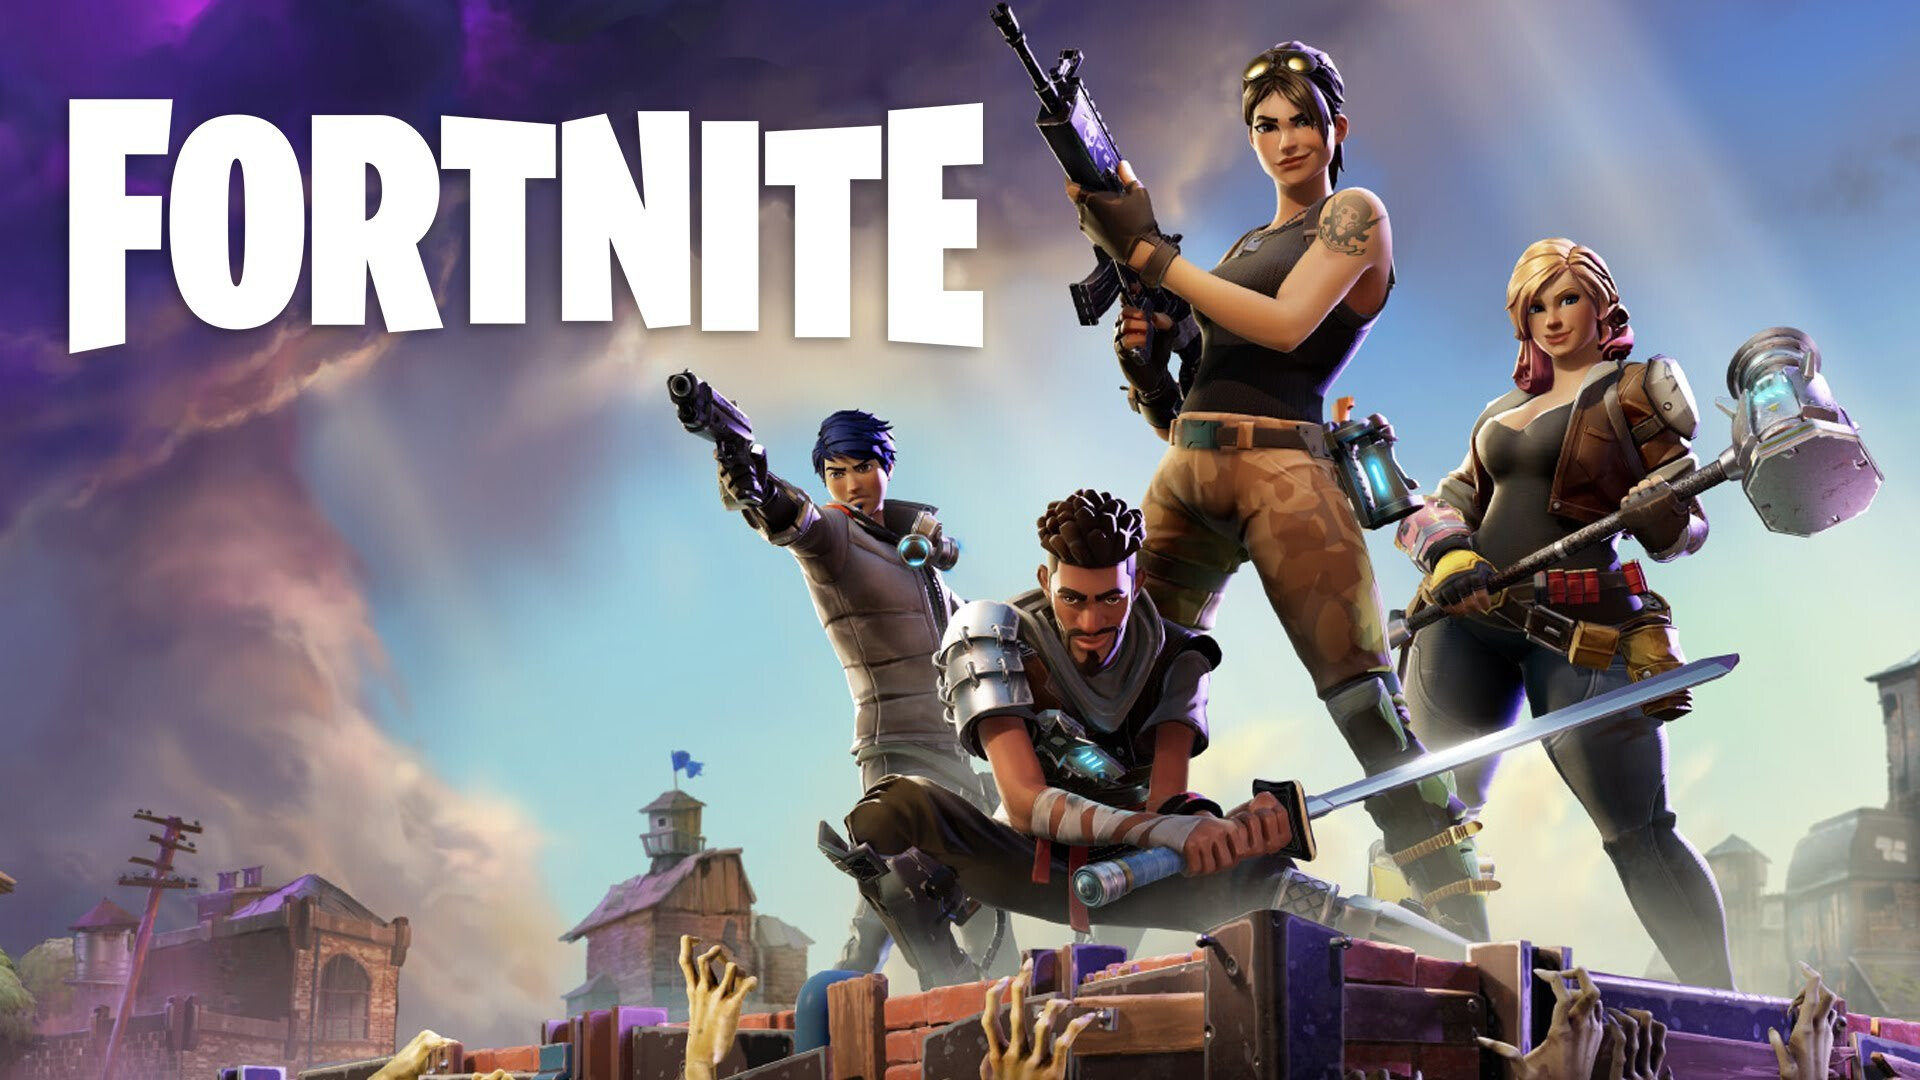 fortnite tips tricks how to dominate the battle royale on your smartphone - fortnite shooting tips ipad